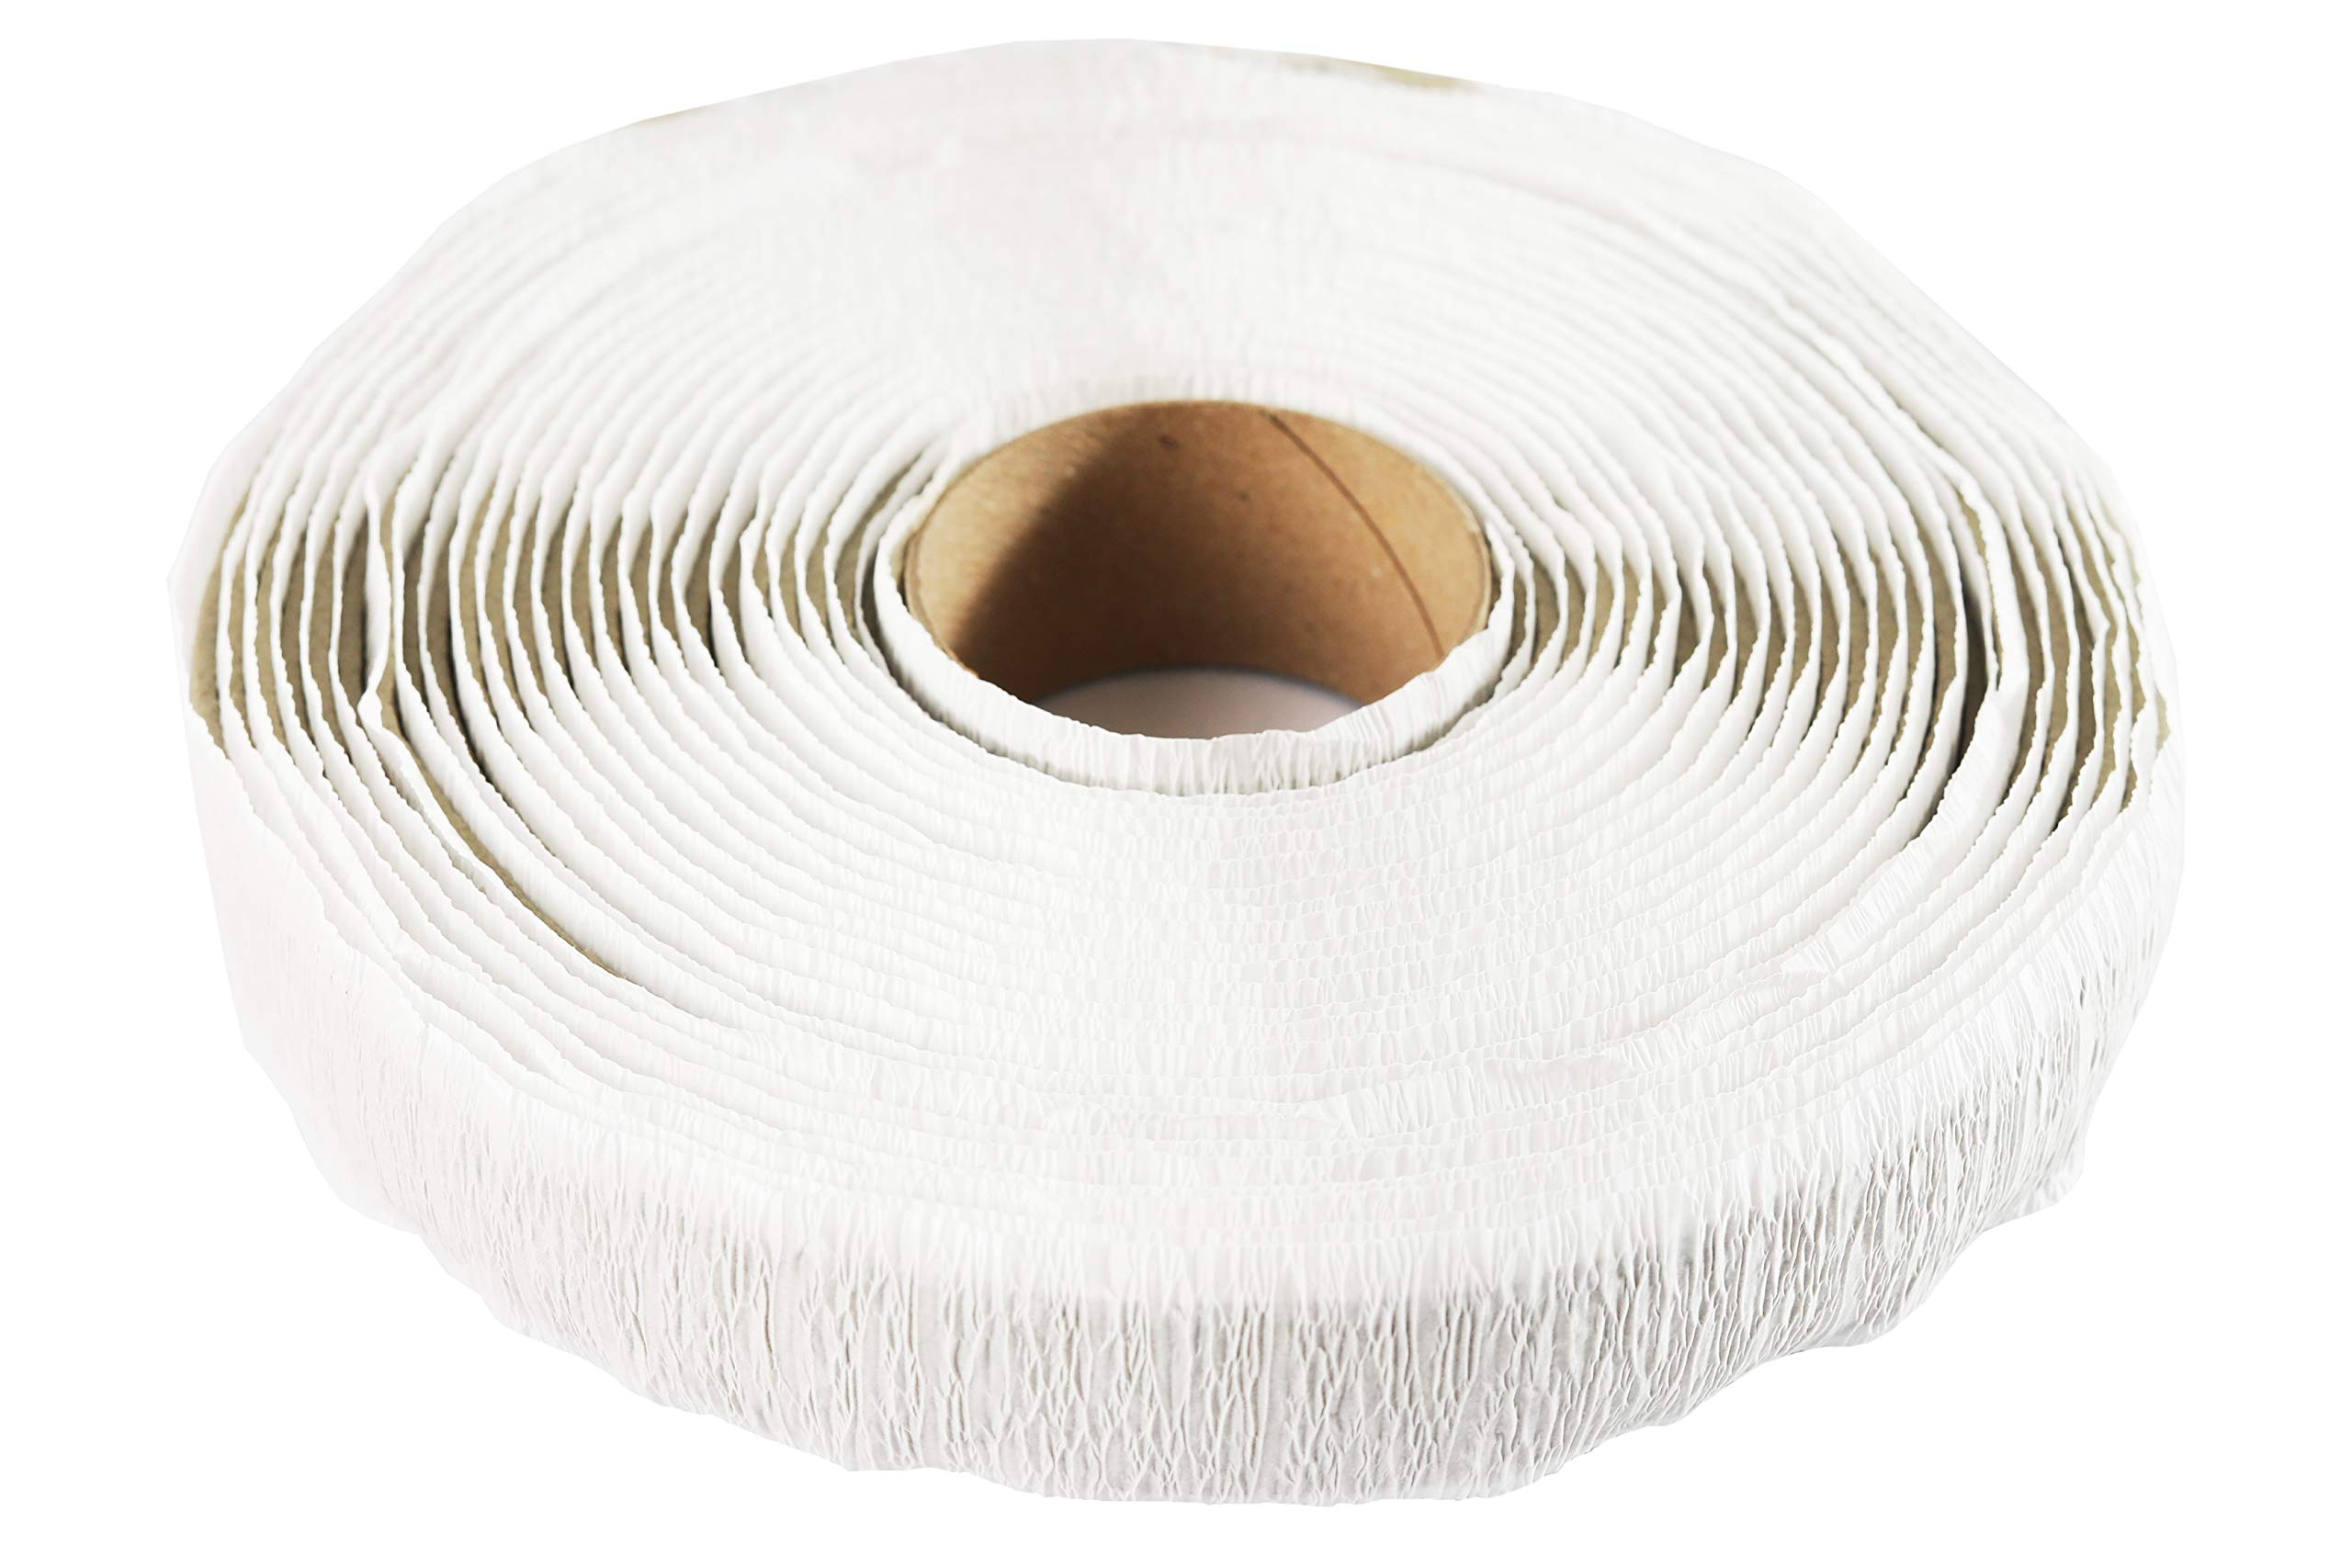 Butyl Putty Tape Window Flange Tape Camper RV Roof and Window Sealant RV Putty Tape (1/8'' x 1'' x 30') by EZ Travel Collection